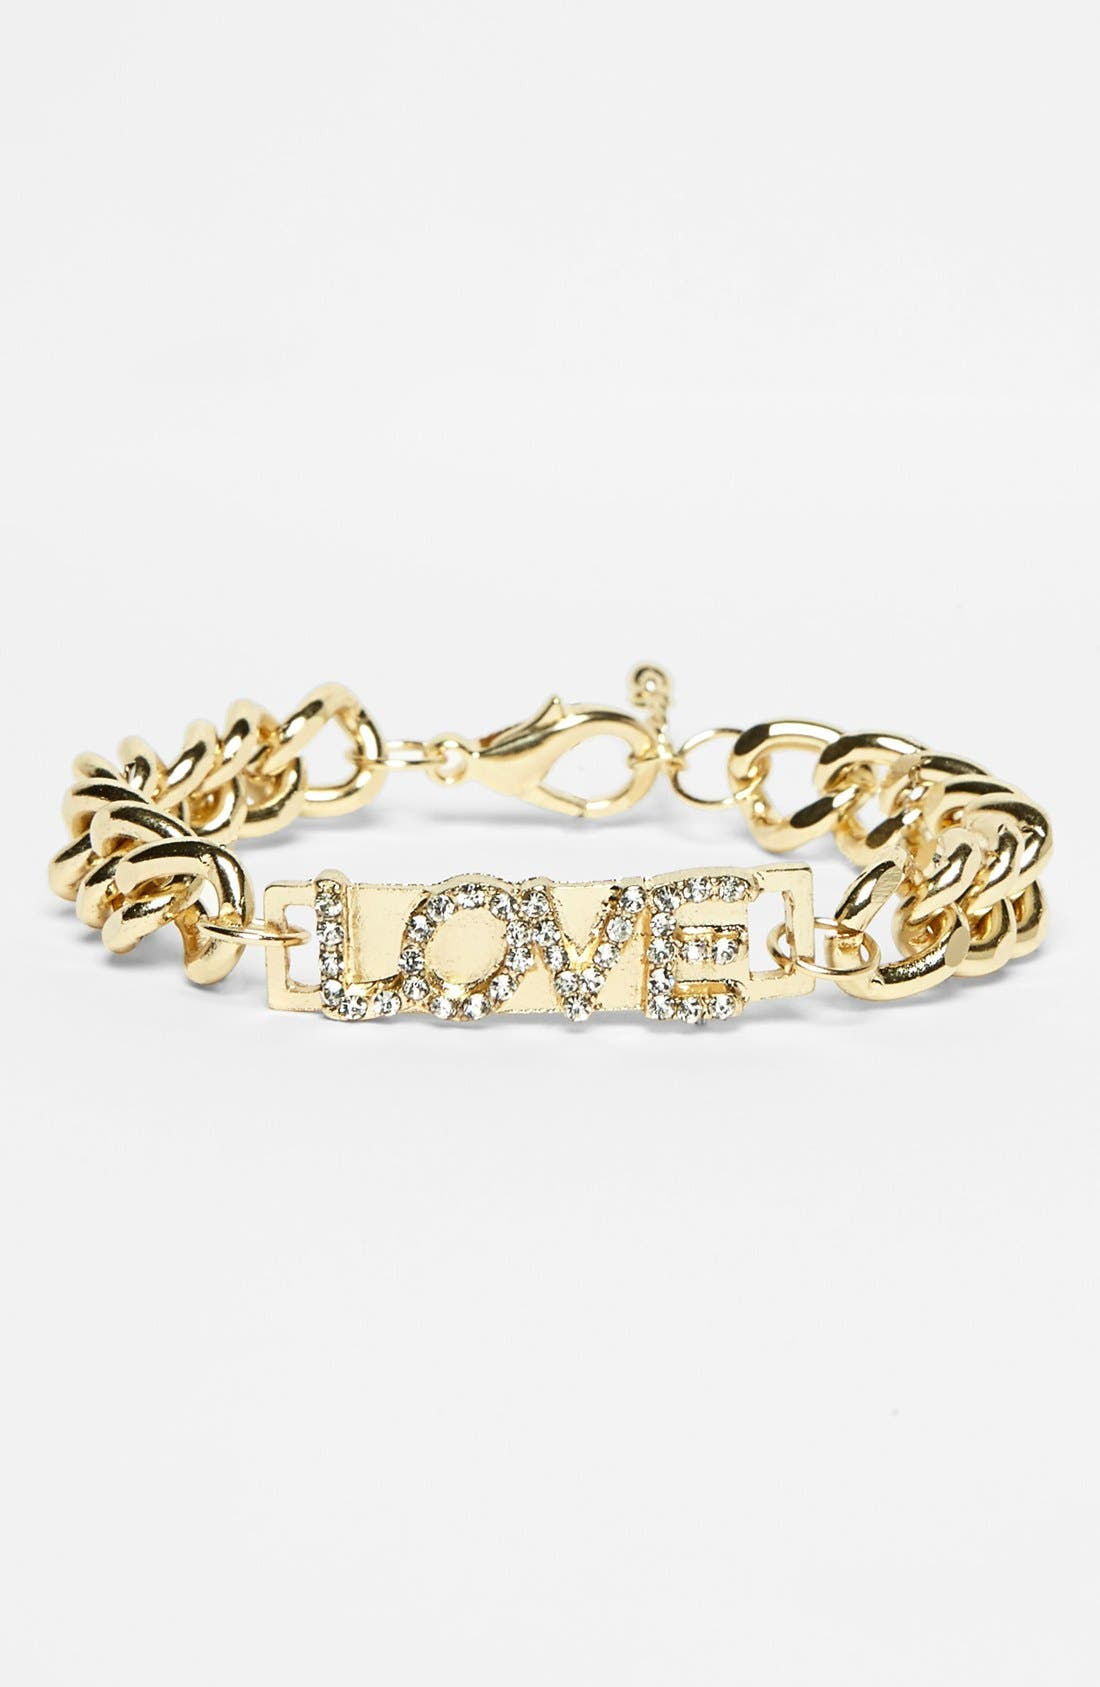 Alternate Image 1 Selected - Stephan & Co. 'Love' Chain Link Bracelet (Juniors) (Online Only)